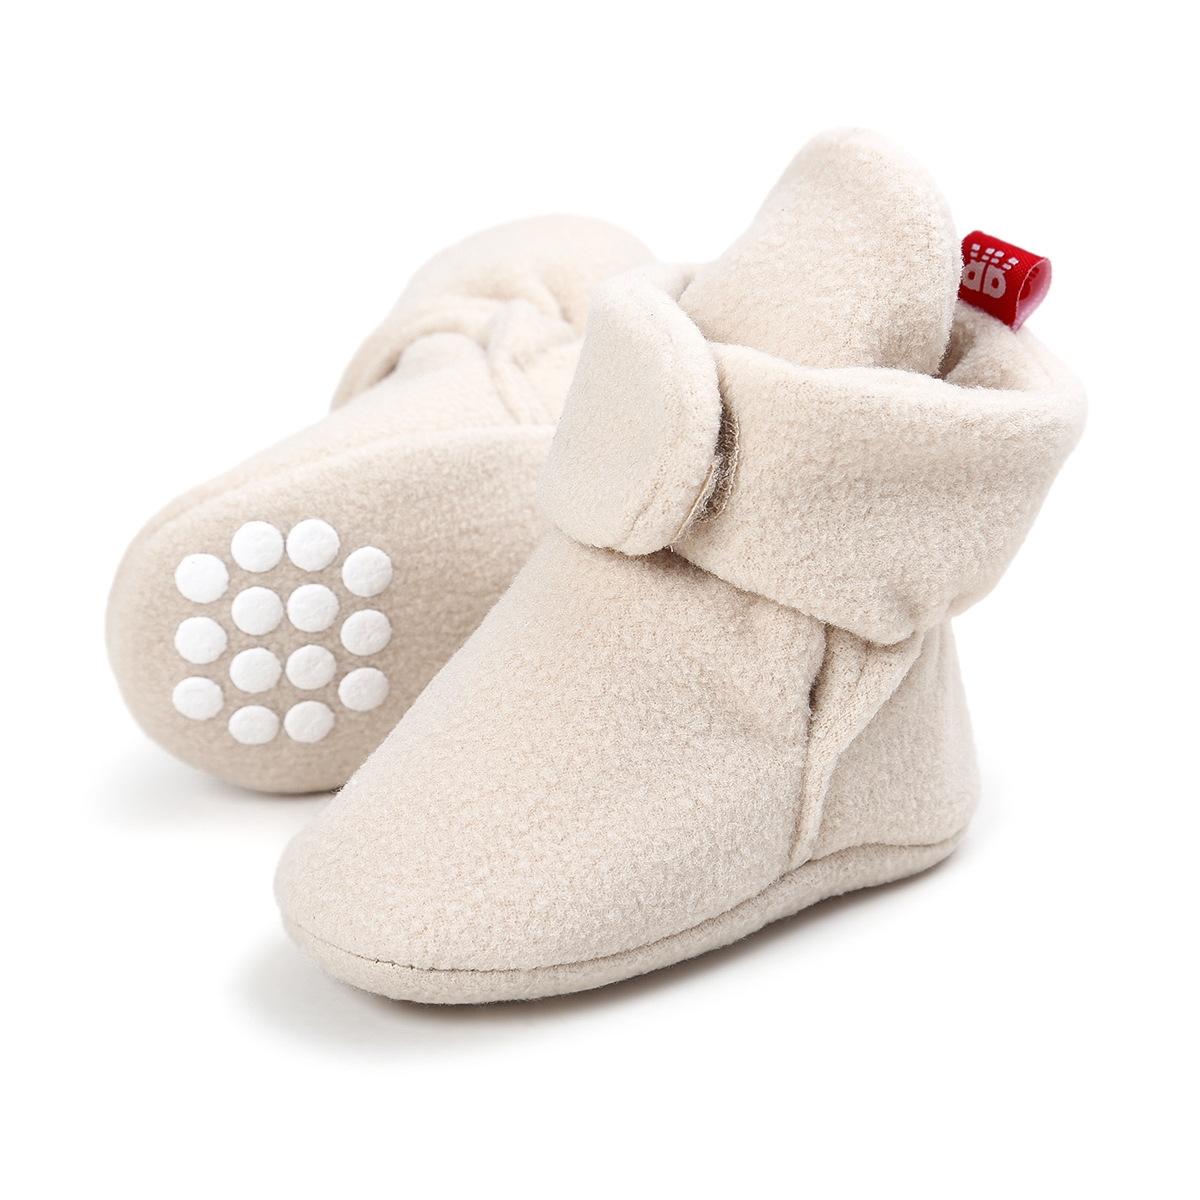 2019 Cute Baby Shoes Newborn Toddler Baby Boy Girl Crib Shoes Soft Sole Non Slip Baby Shoes